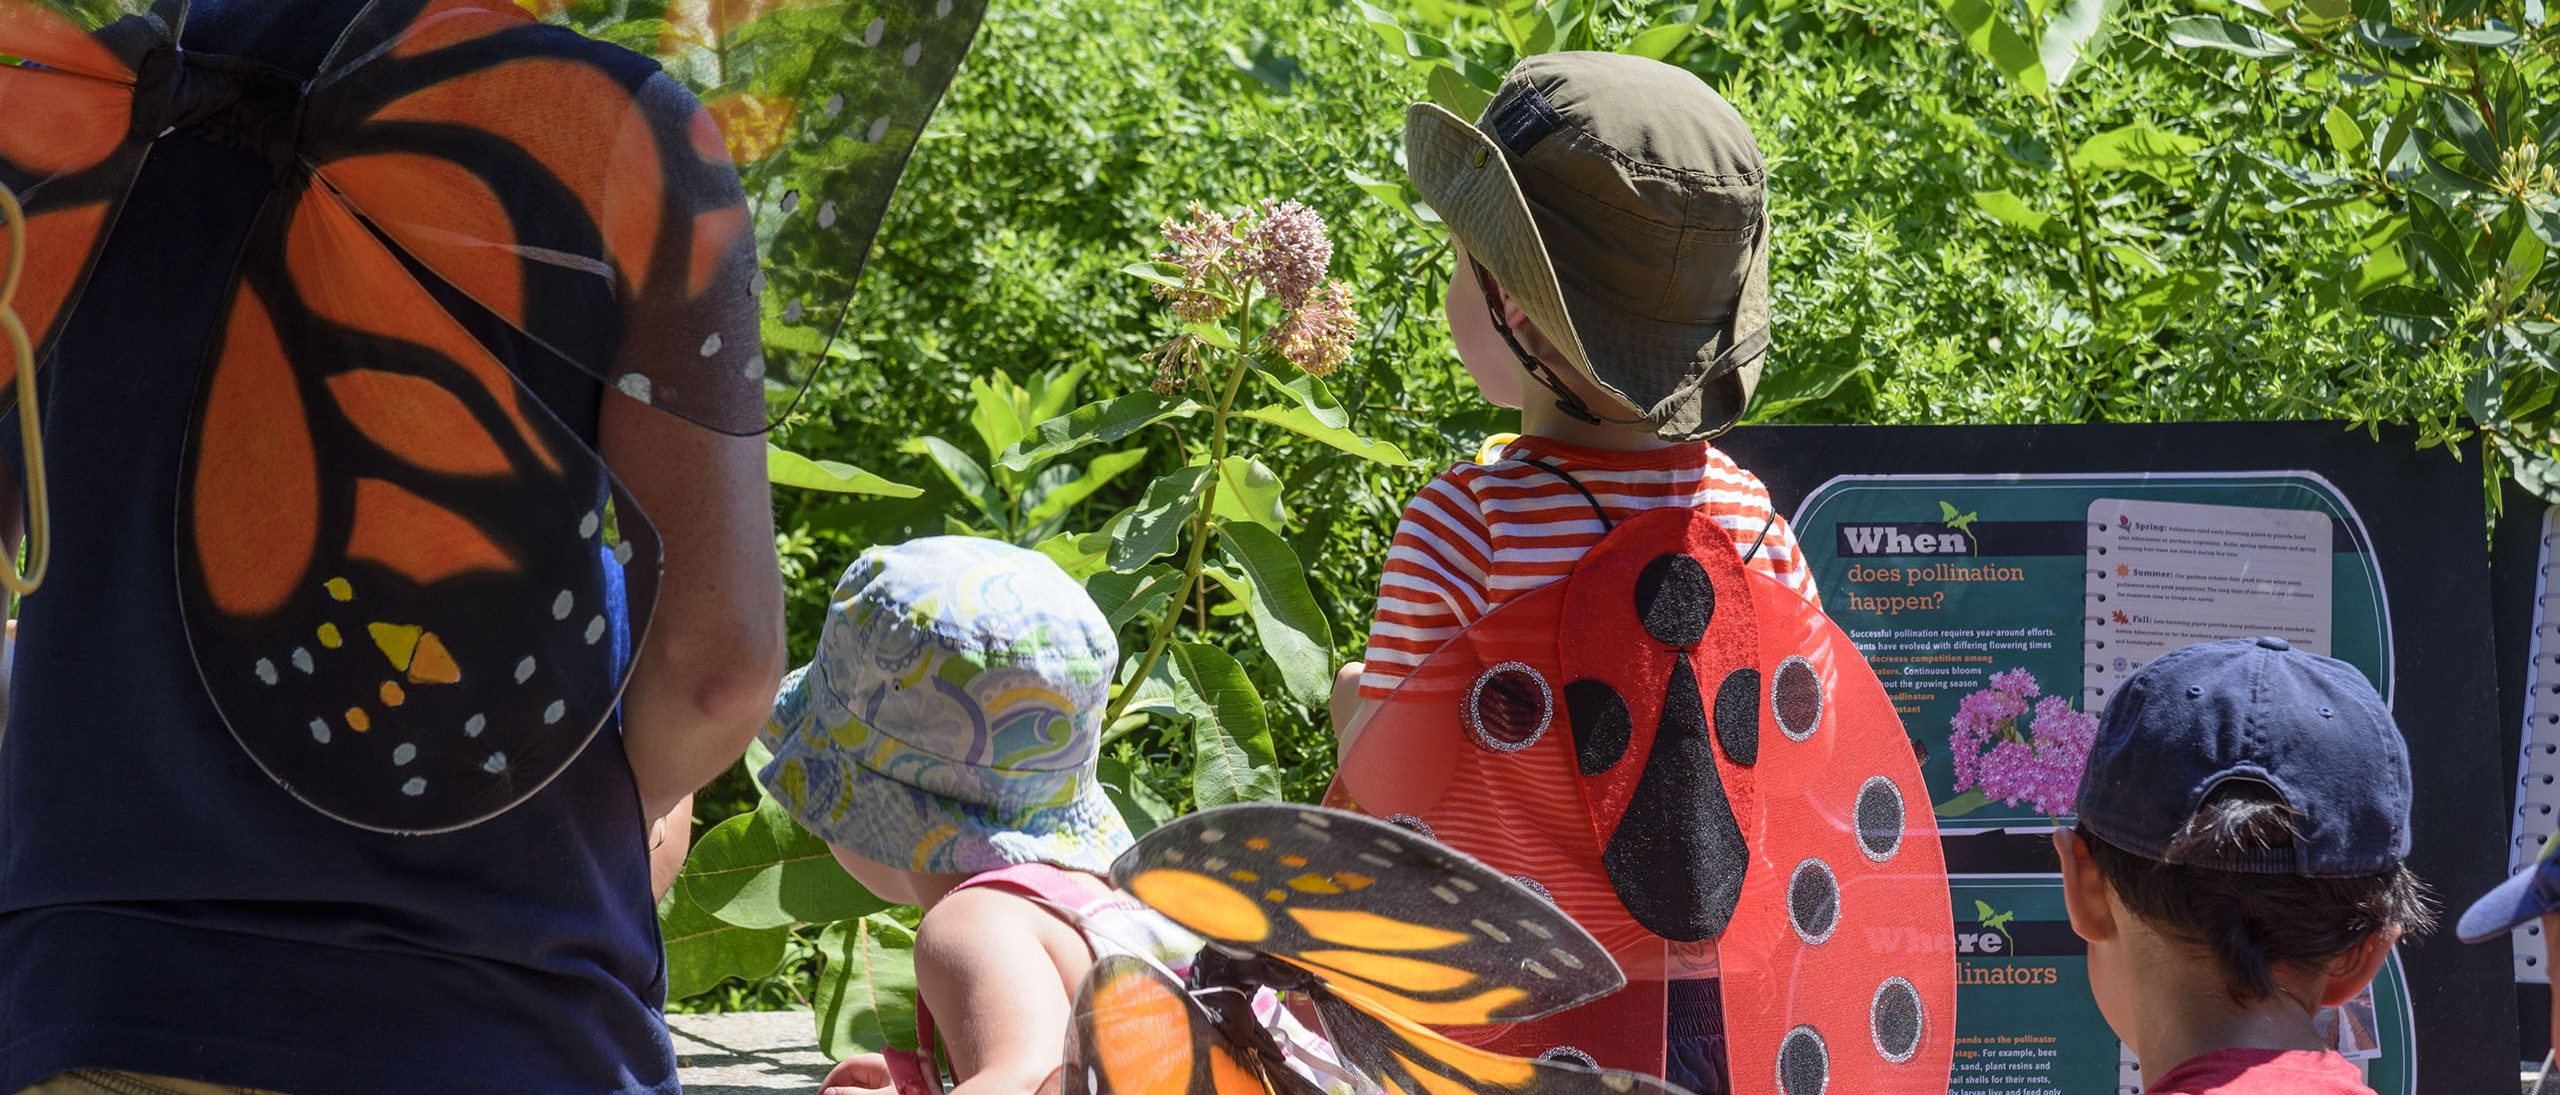 Pollinator Garden at the National Museum of Natural History